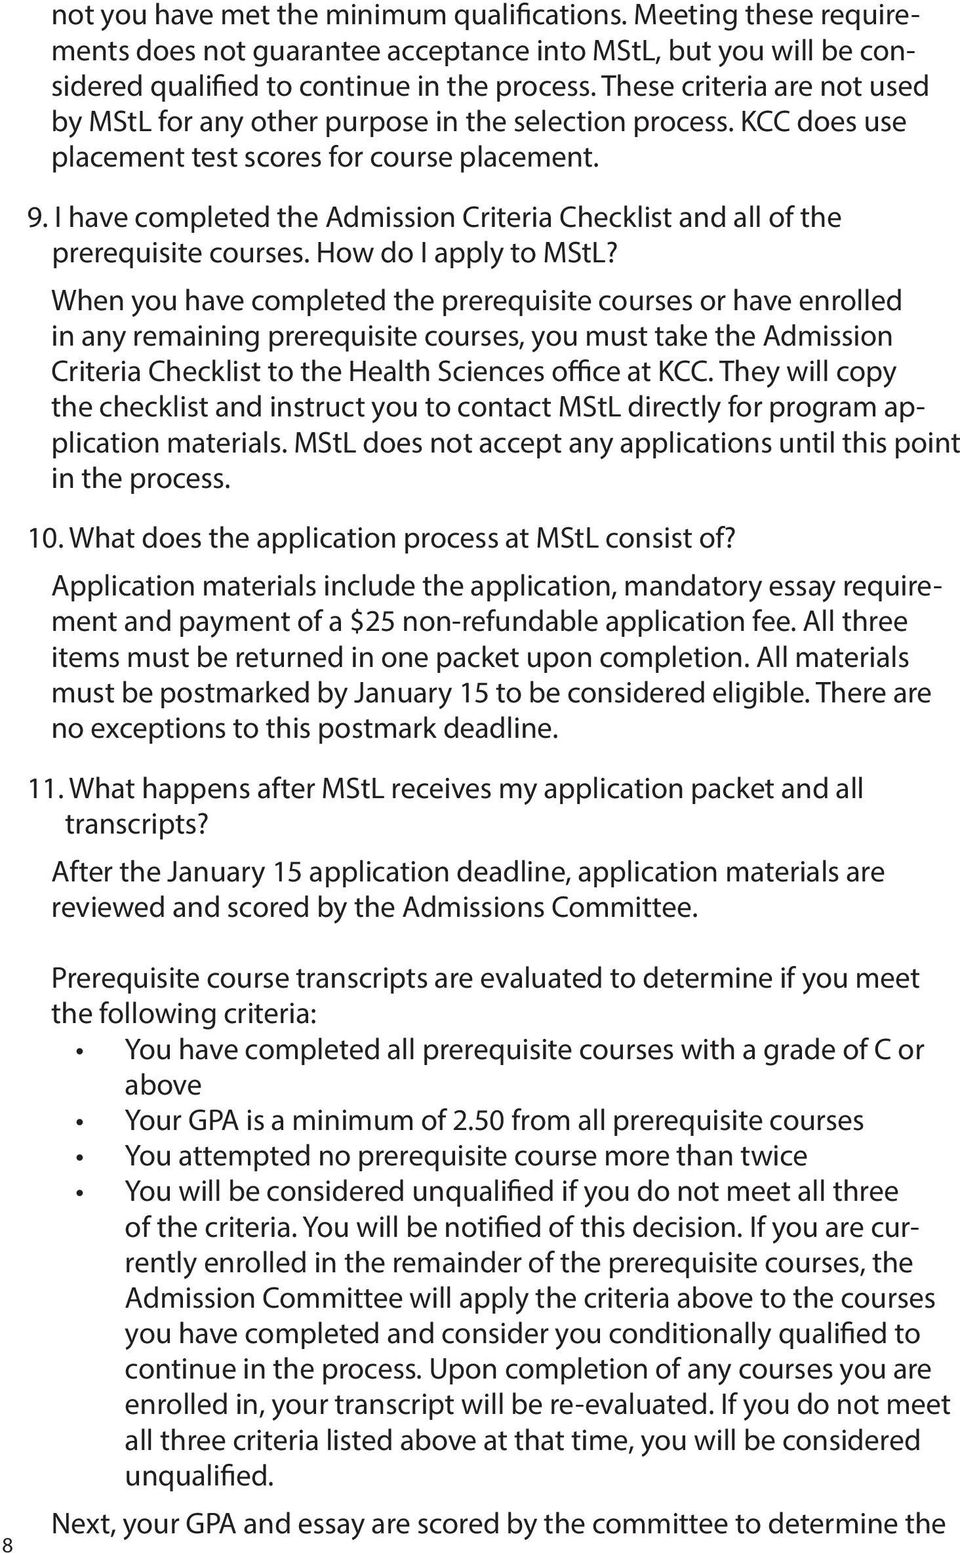 I have completed the Admission Criteria Checklist and all of the prerequisite courses. How do I apply to MStL?